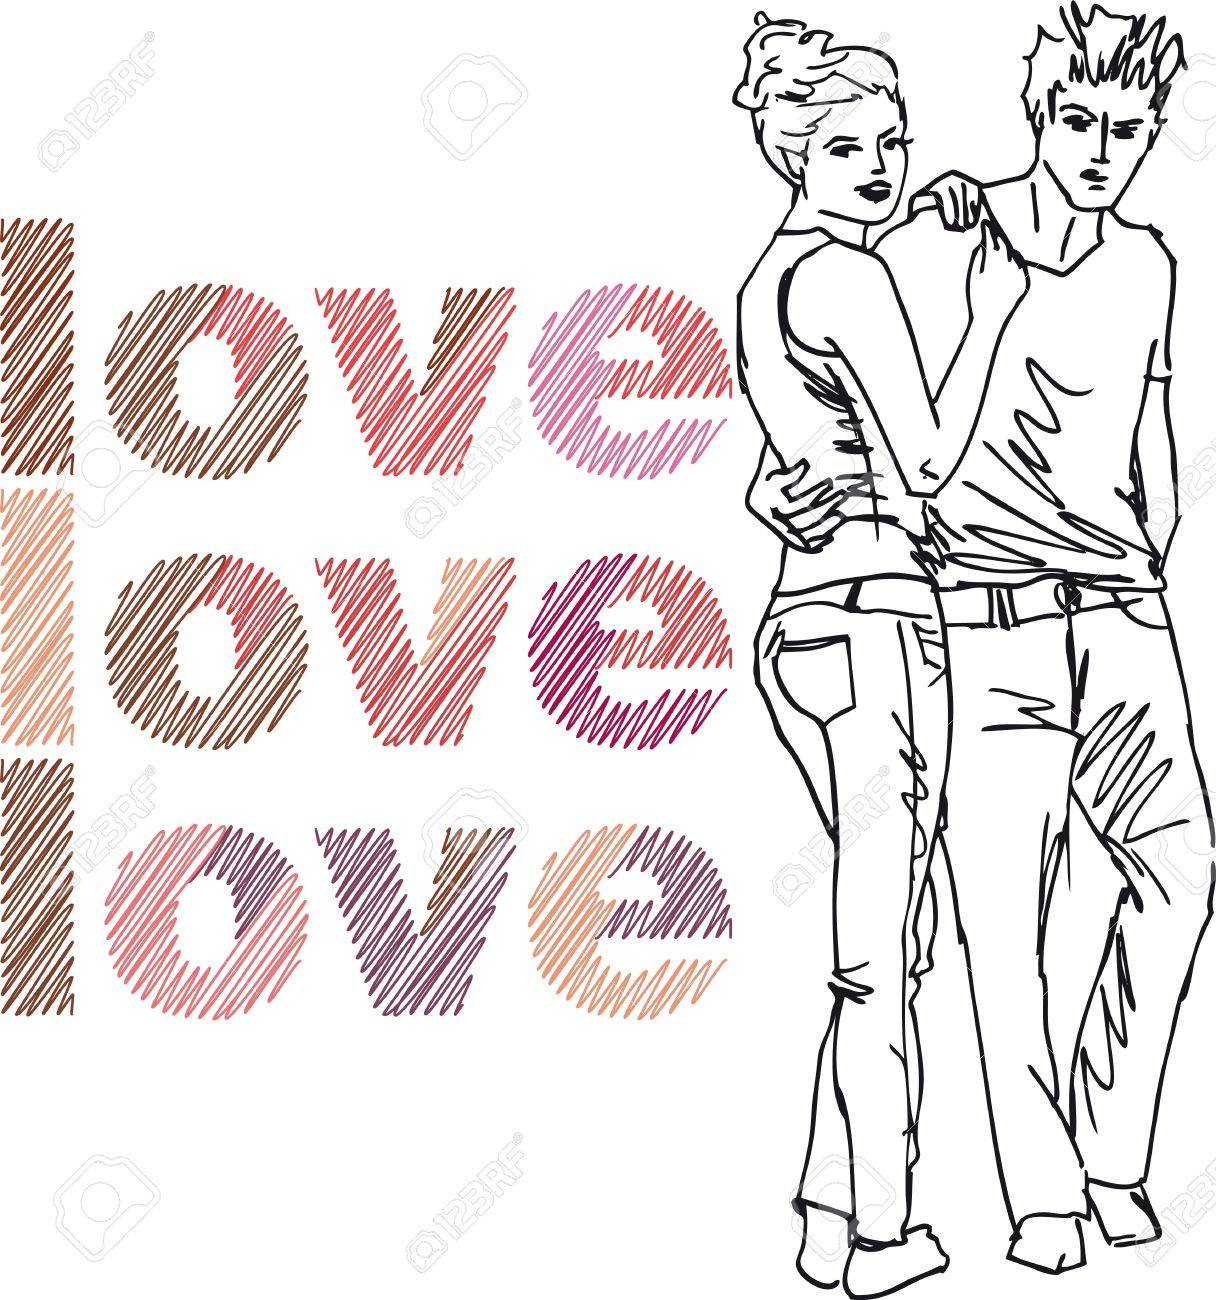 Sketch of couple. Vector illustration. Stock Vector - 11780167